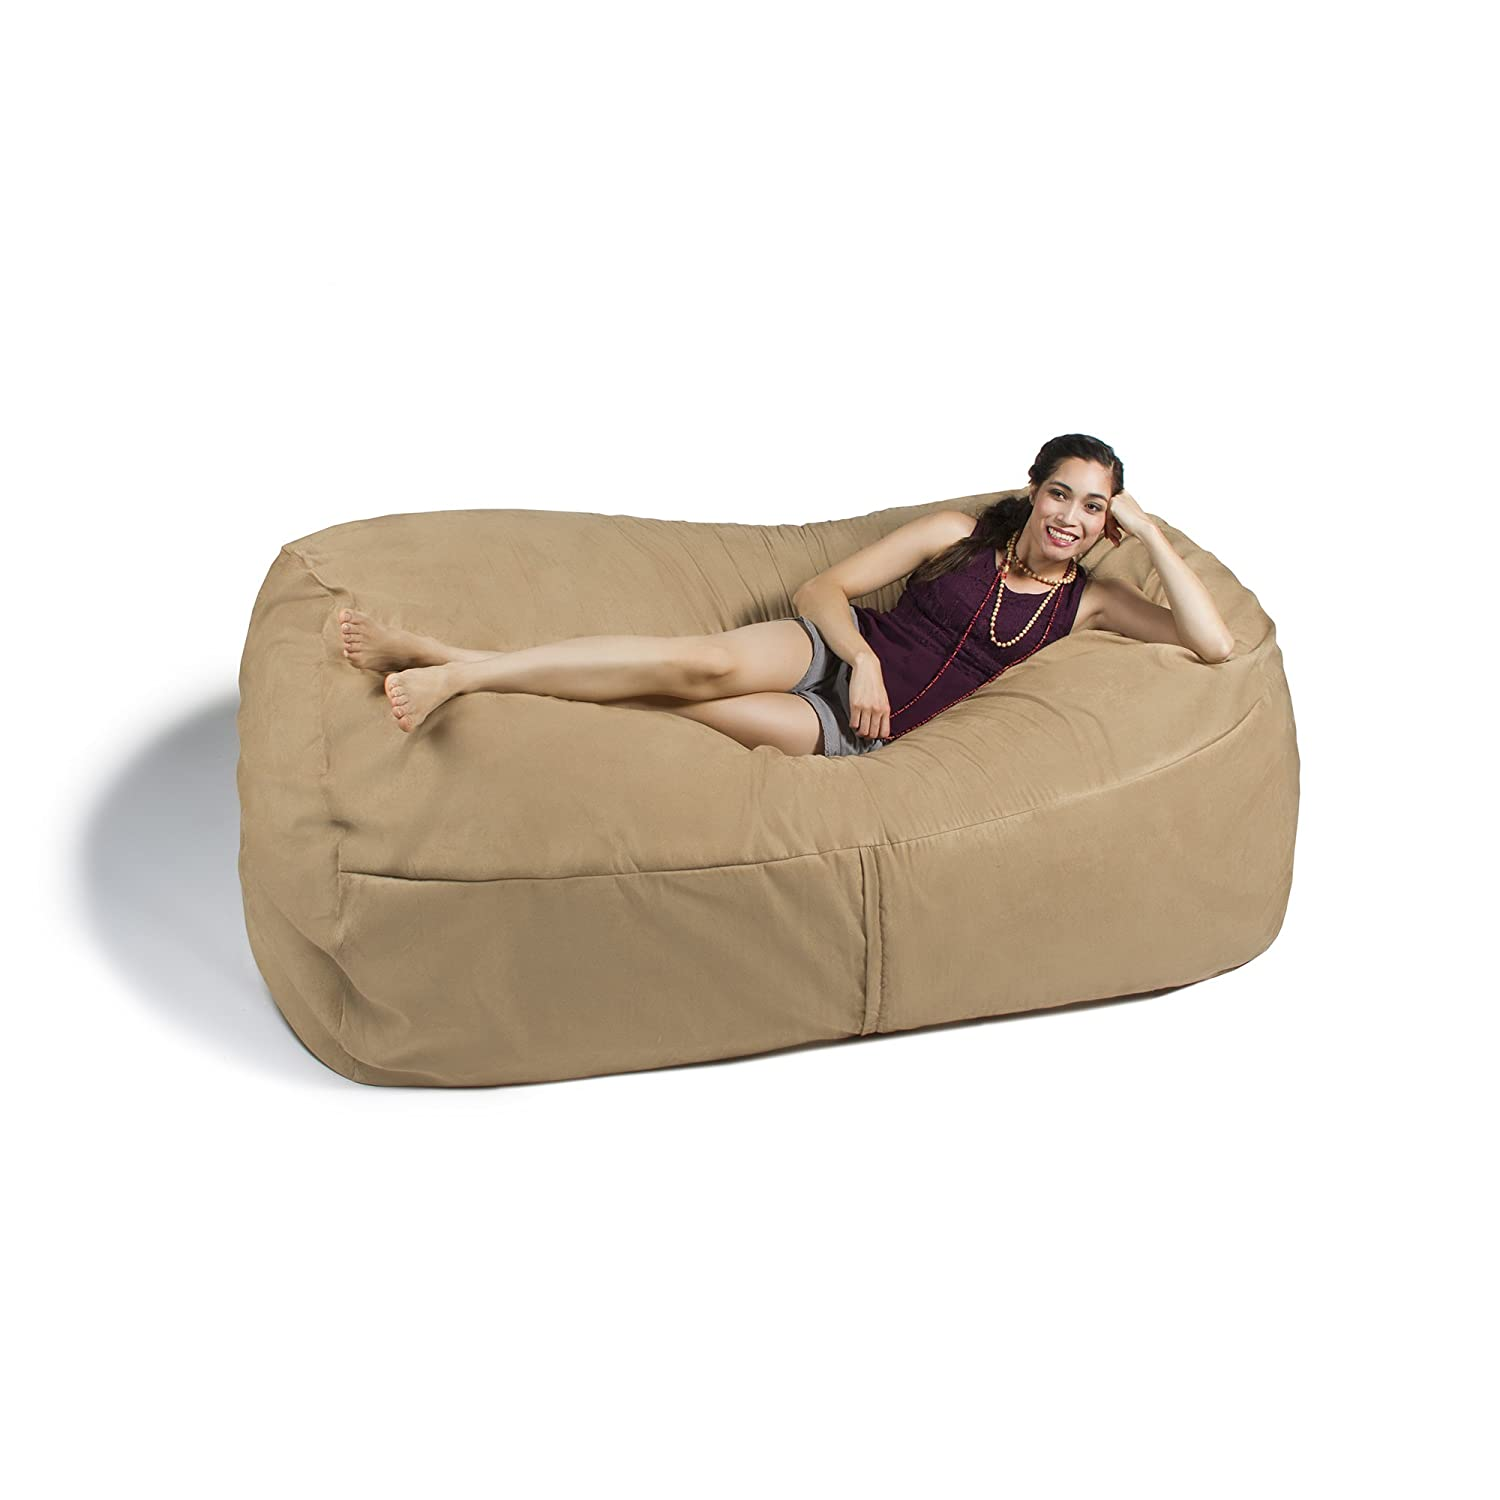 Amazon Jaxx Giant Bean Bag Lounger 7 Foot Camel Toys Games